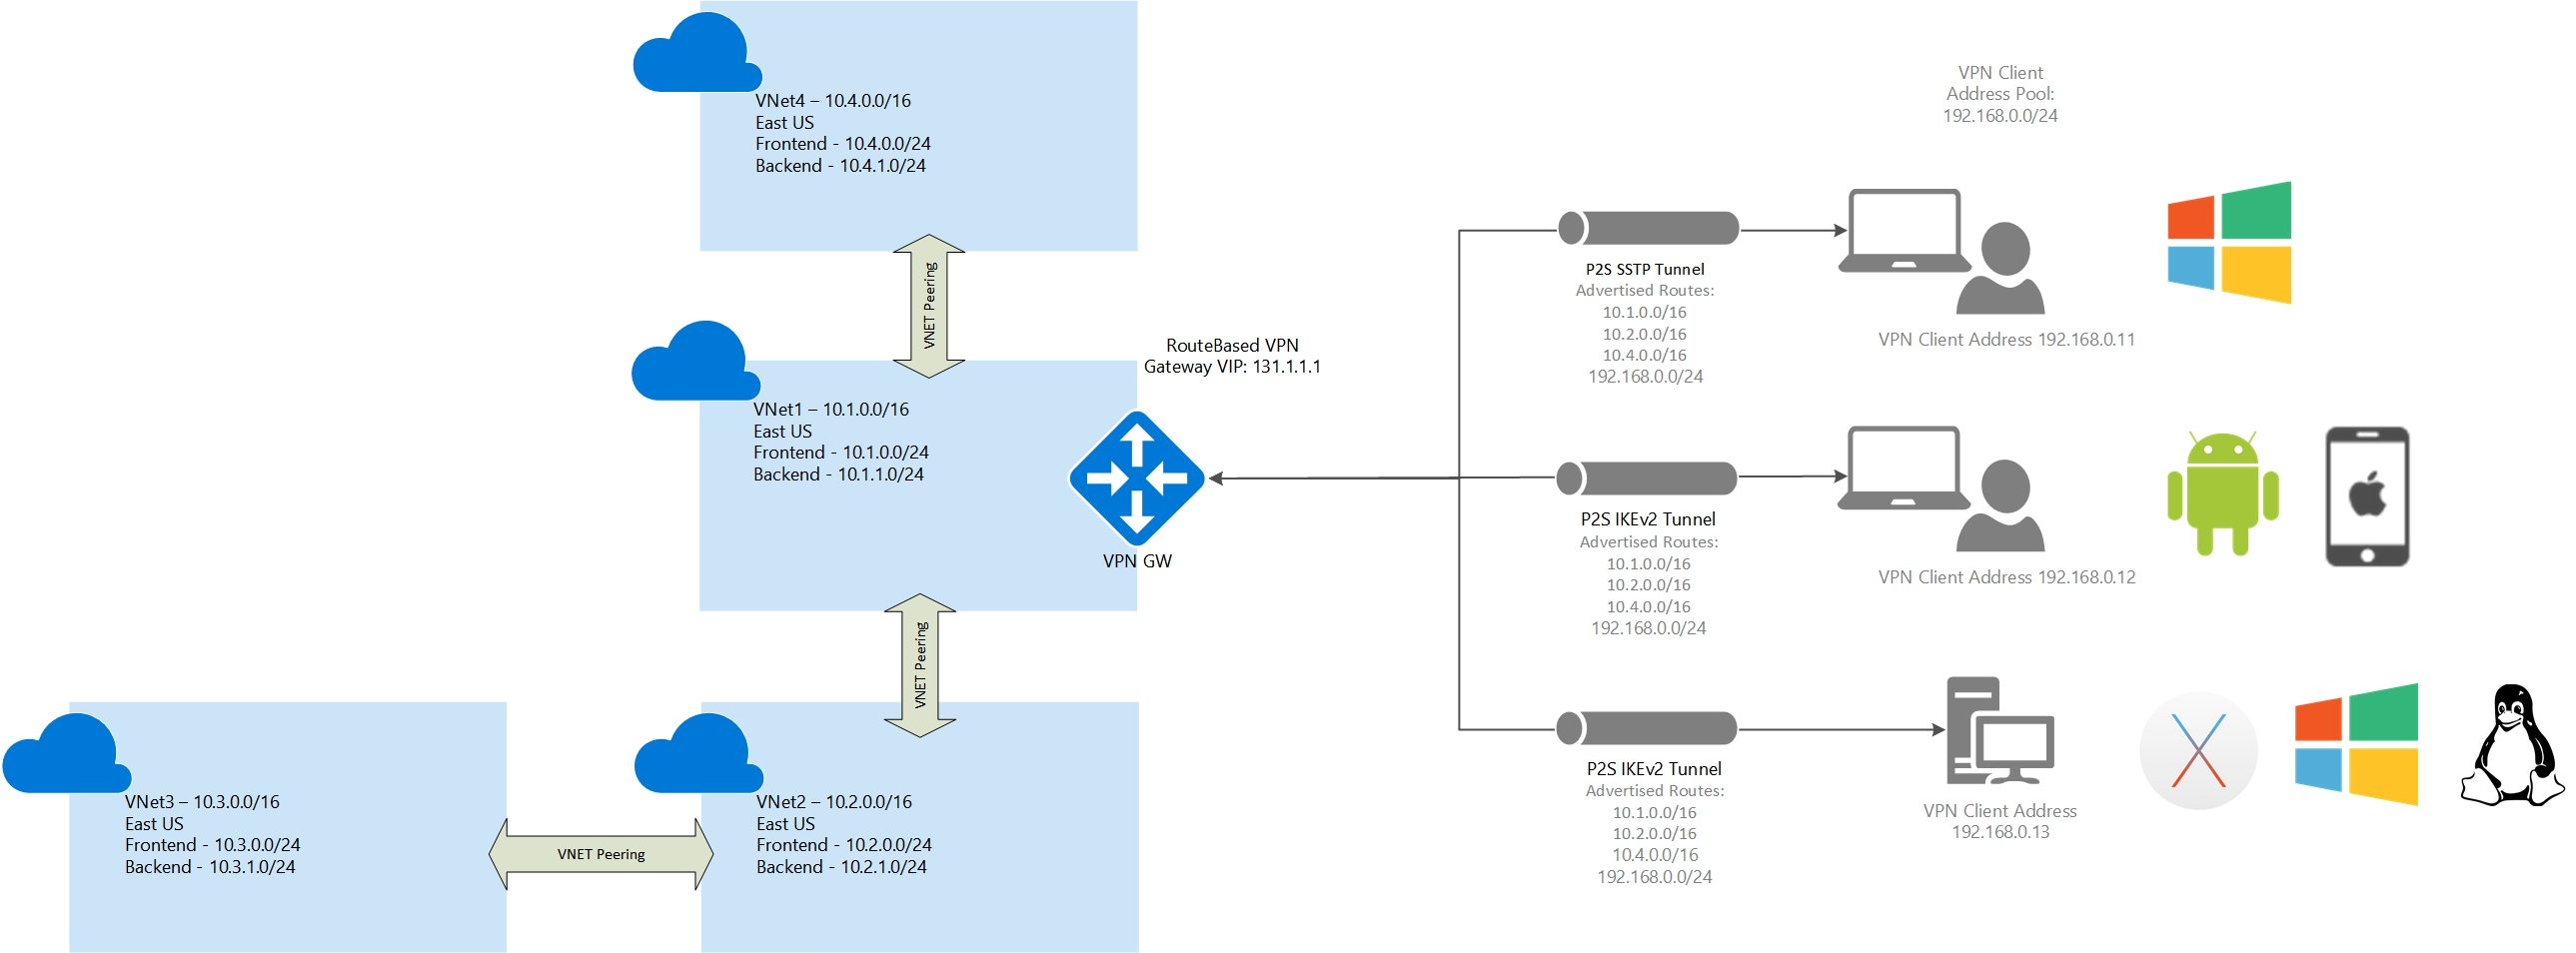 About Azure Point-to-Site routing | Microsoft Docs